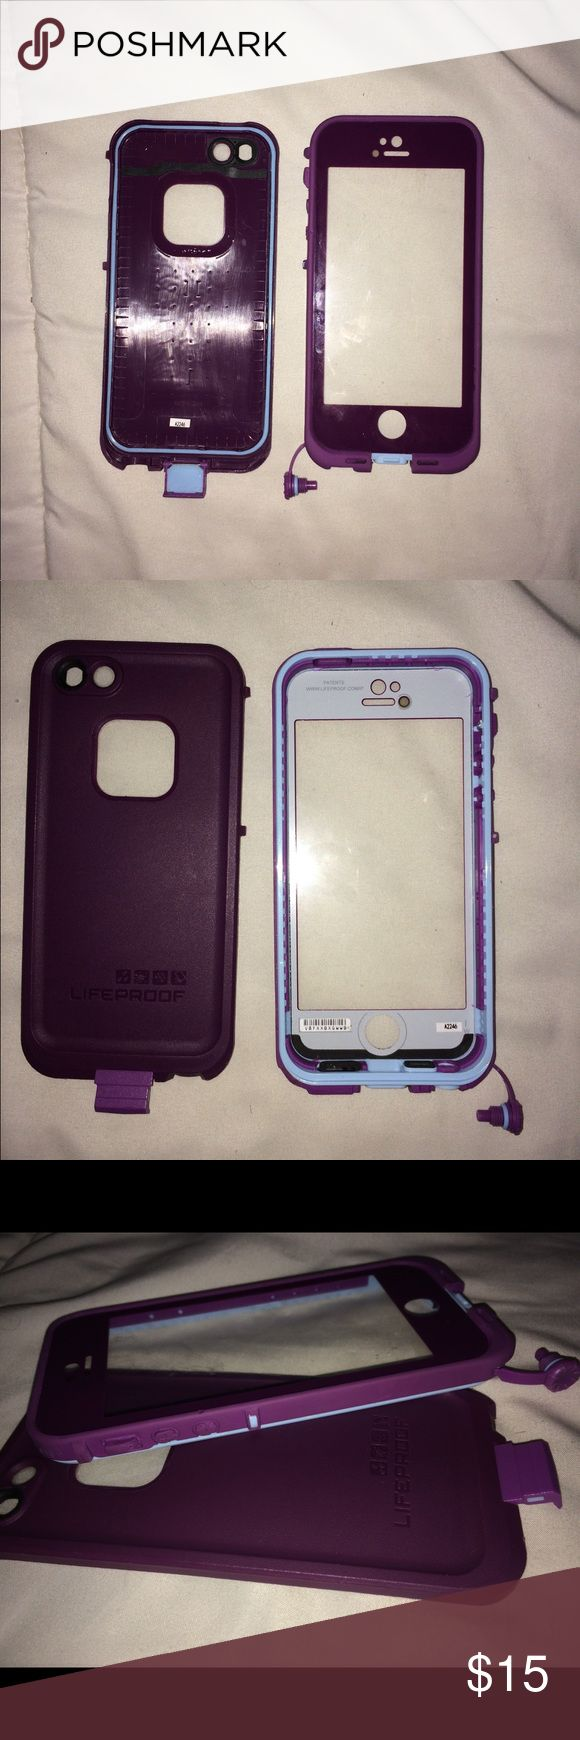 Life proof FRE Iphone 5/5s Imperial Purple The case still has lots of life left in it, however the switch to control the silence button does not work. All other ports & seals are functioning. The case is authentic and I have left serial numbers on it. Thanks for looking & happy poshing :) Defect is reflected in pricing . LifeProof Accessories Phone Cases